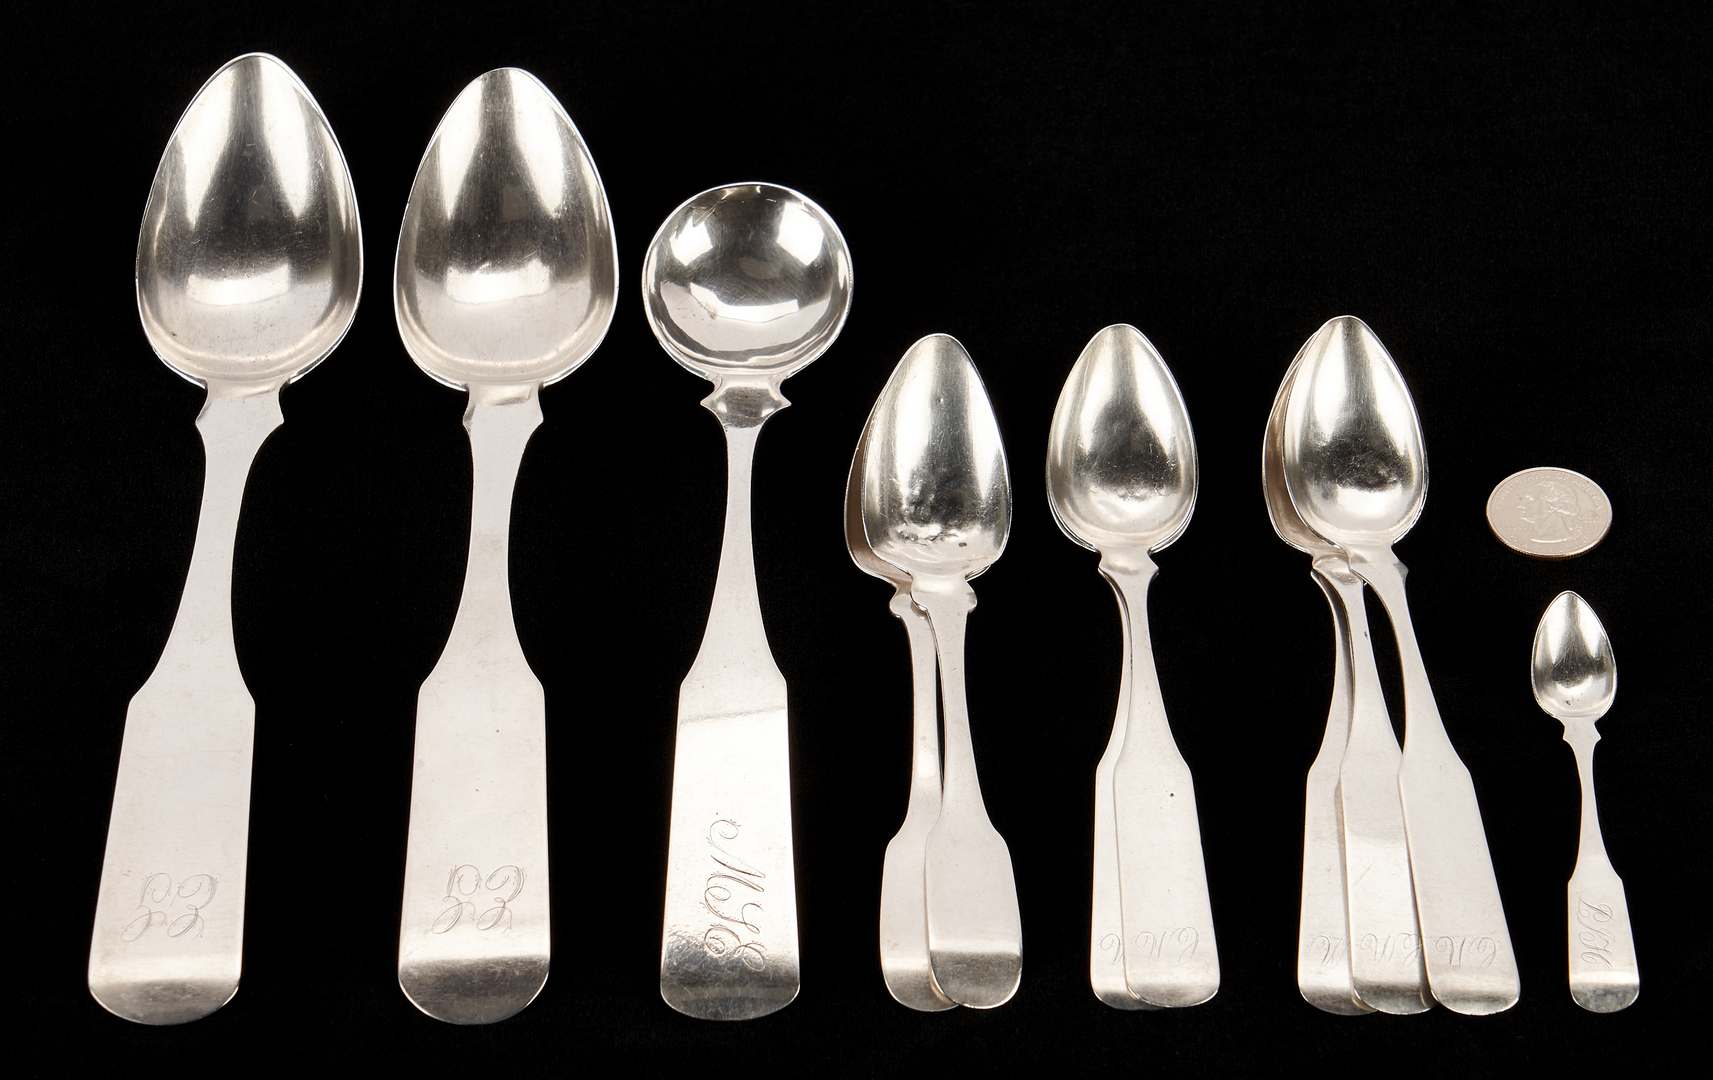 Lot 315: 11 Pcs. Beauchamp KY Coin Silver, incl. Ladle, Bowling Green